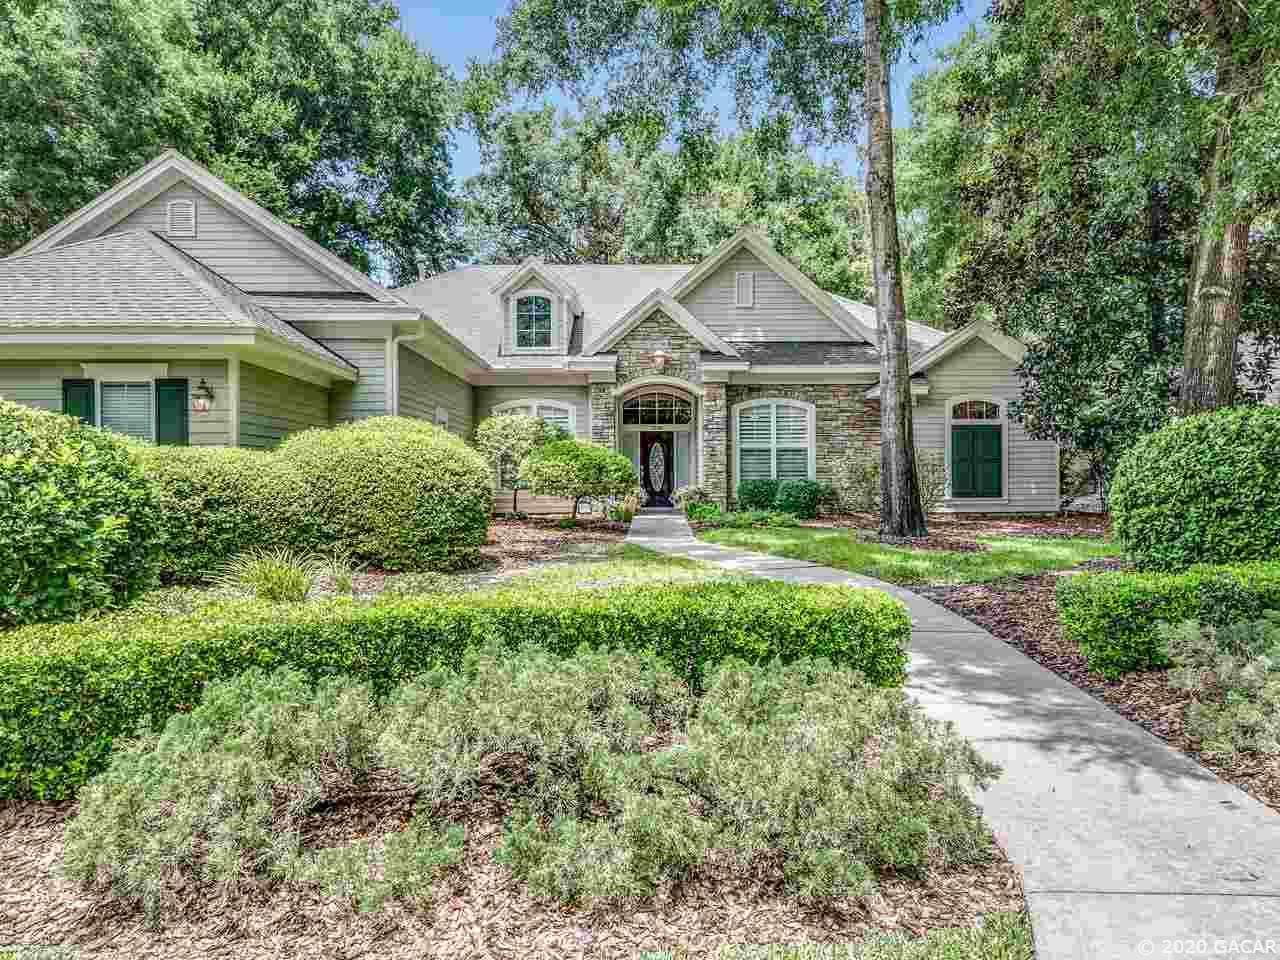 9706 SW 34 Lane, Gainesville, FL 32608 - #: 436055